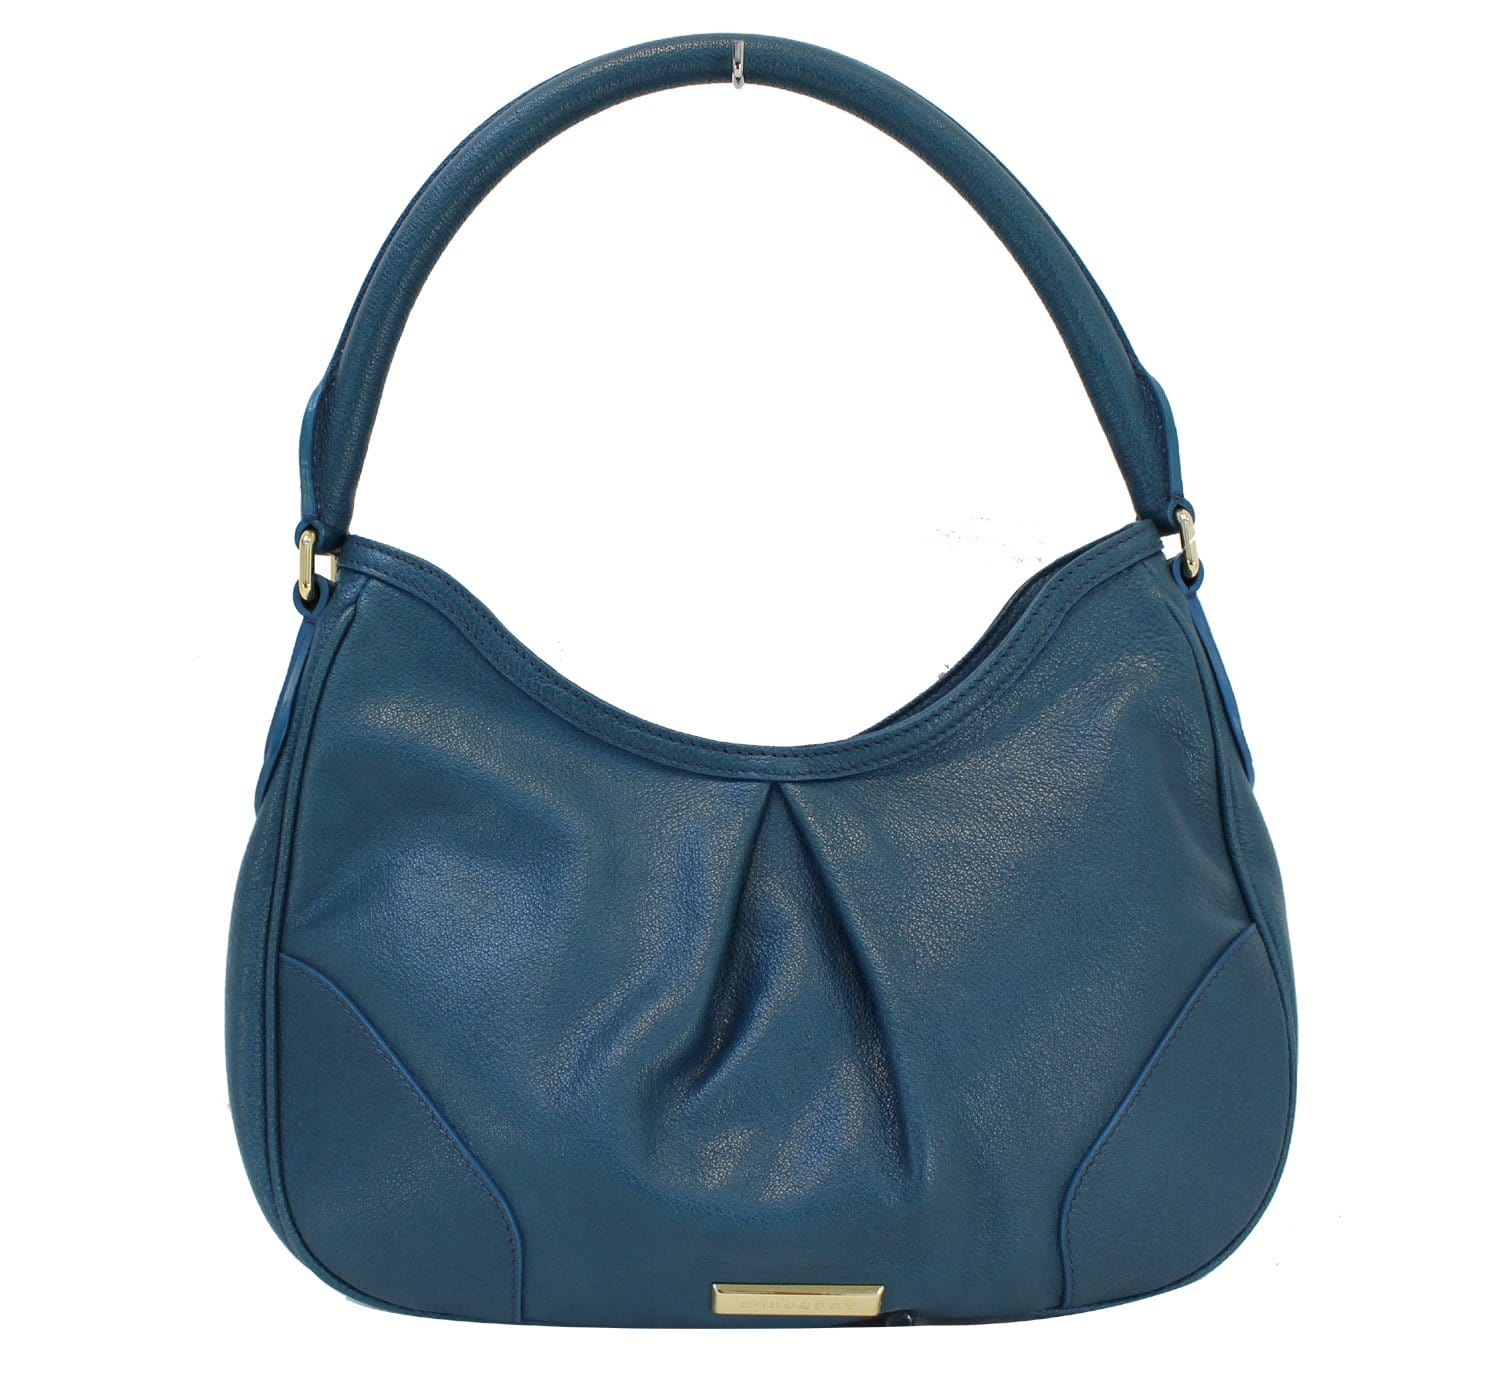 589d5a347c6c BURBERRY Hernville Leather Teal Small Hobo Bag - 20% Off